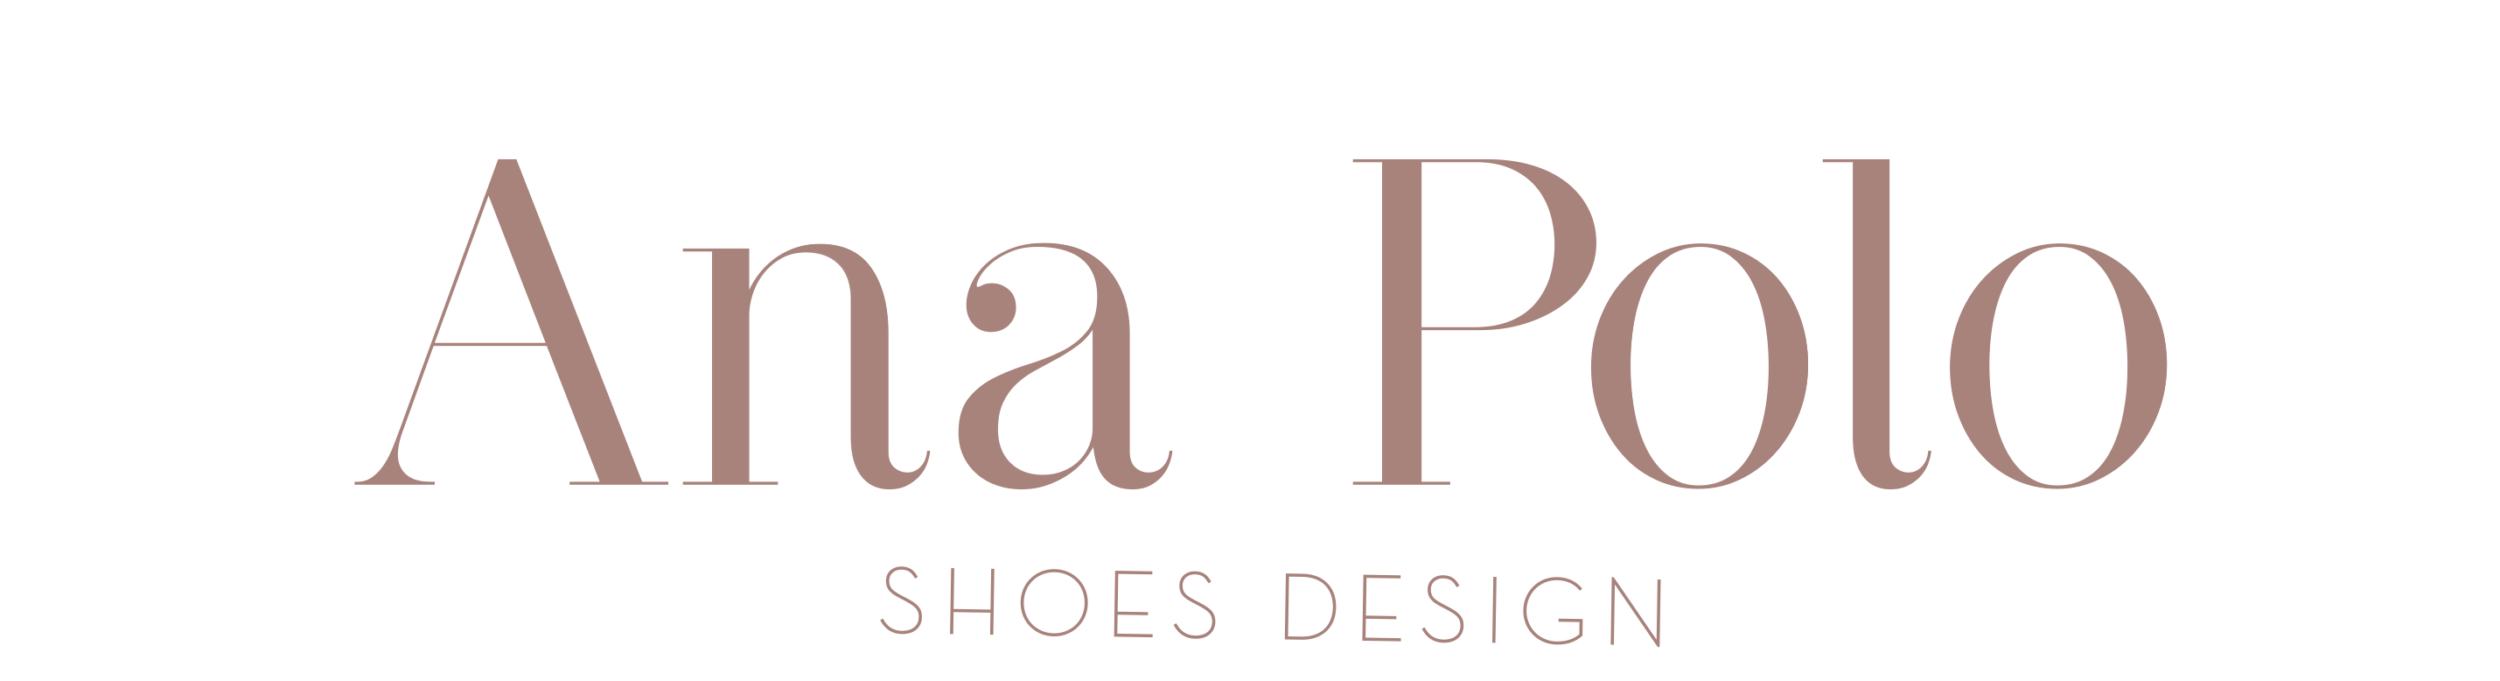 Ana Polo Shoes